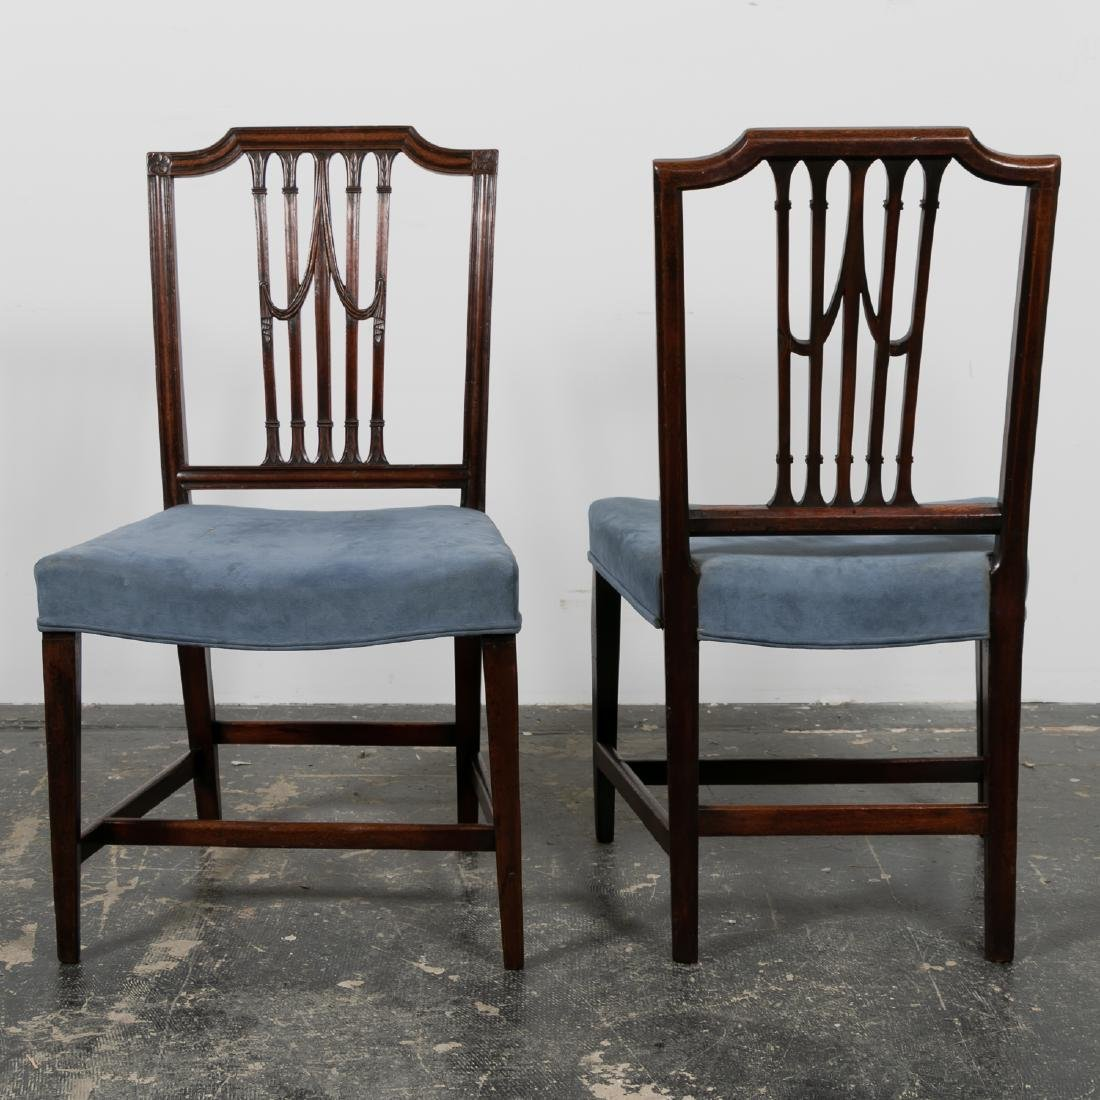 S/4 English Mahogany Sheraton Side Chairs, 19th C. - 3